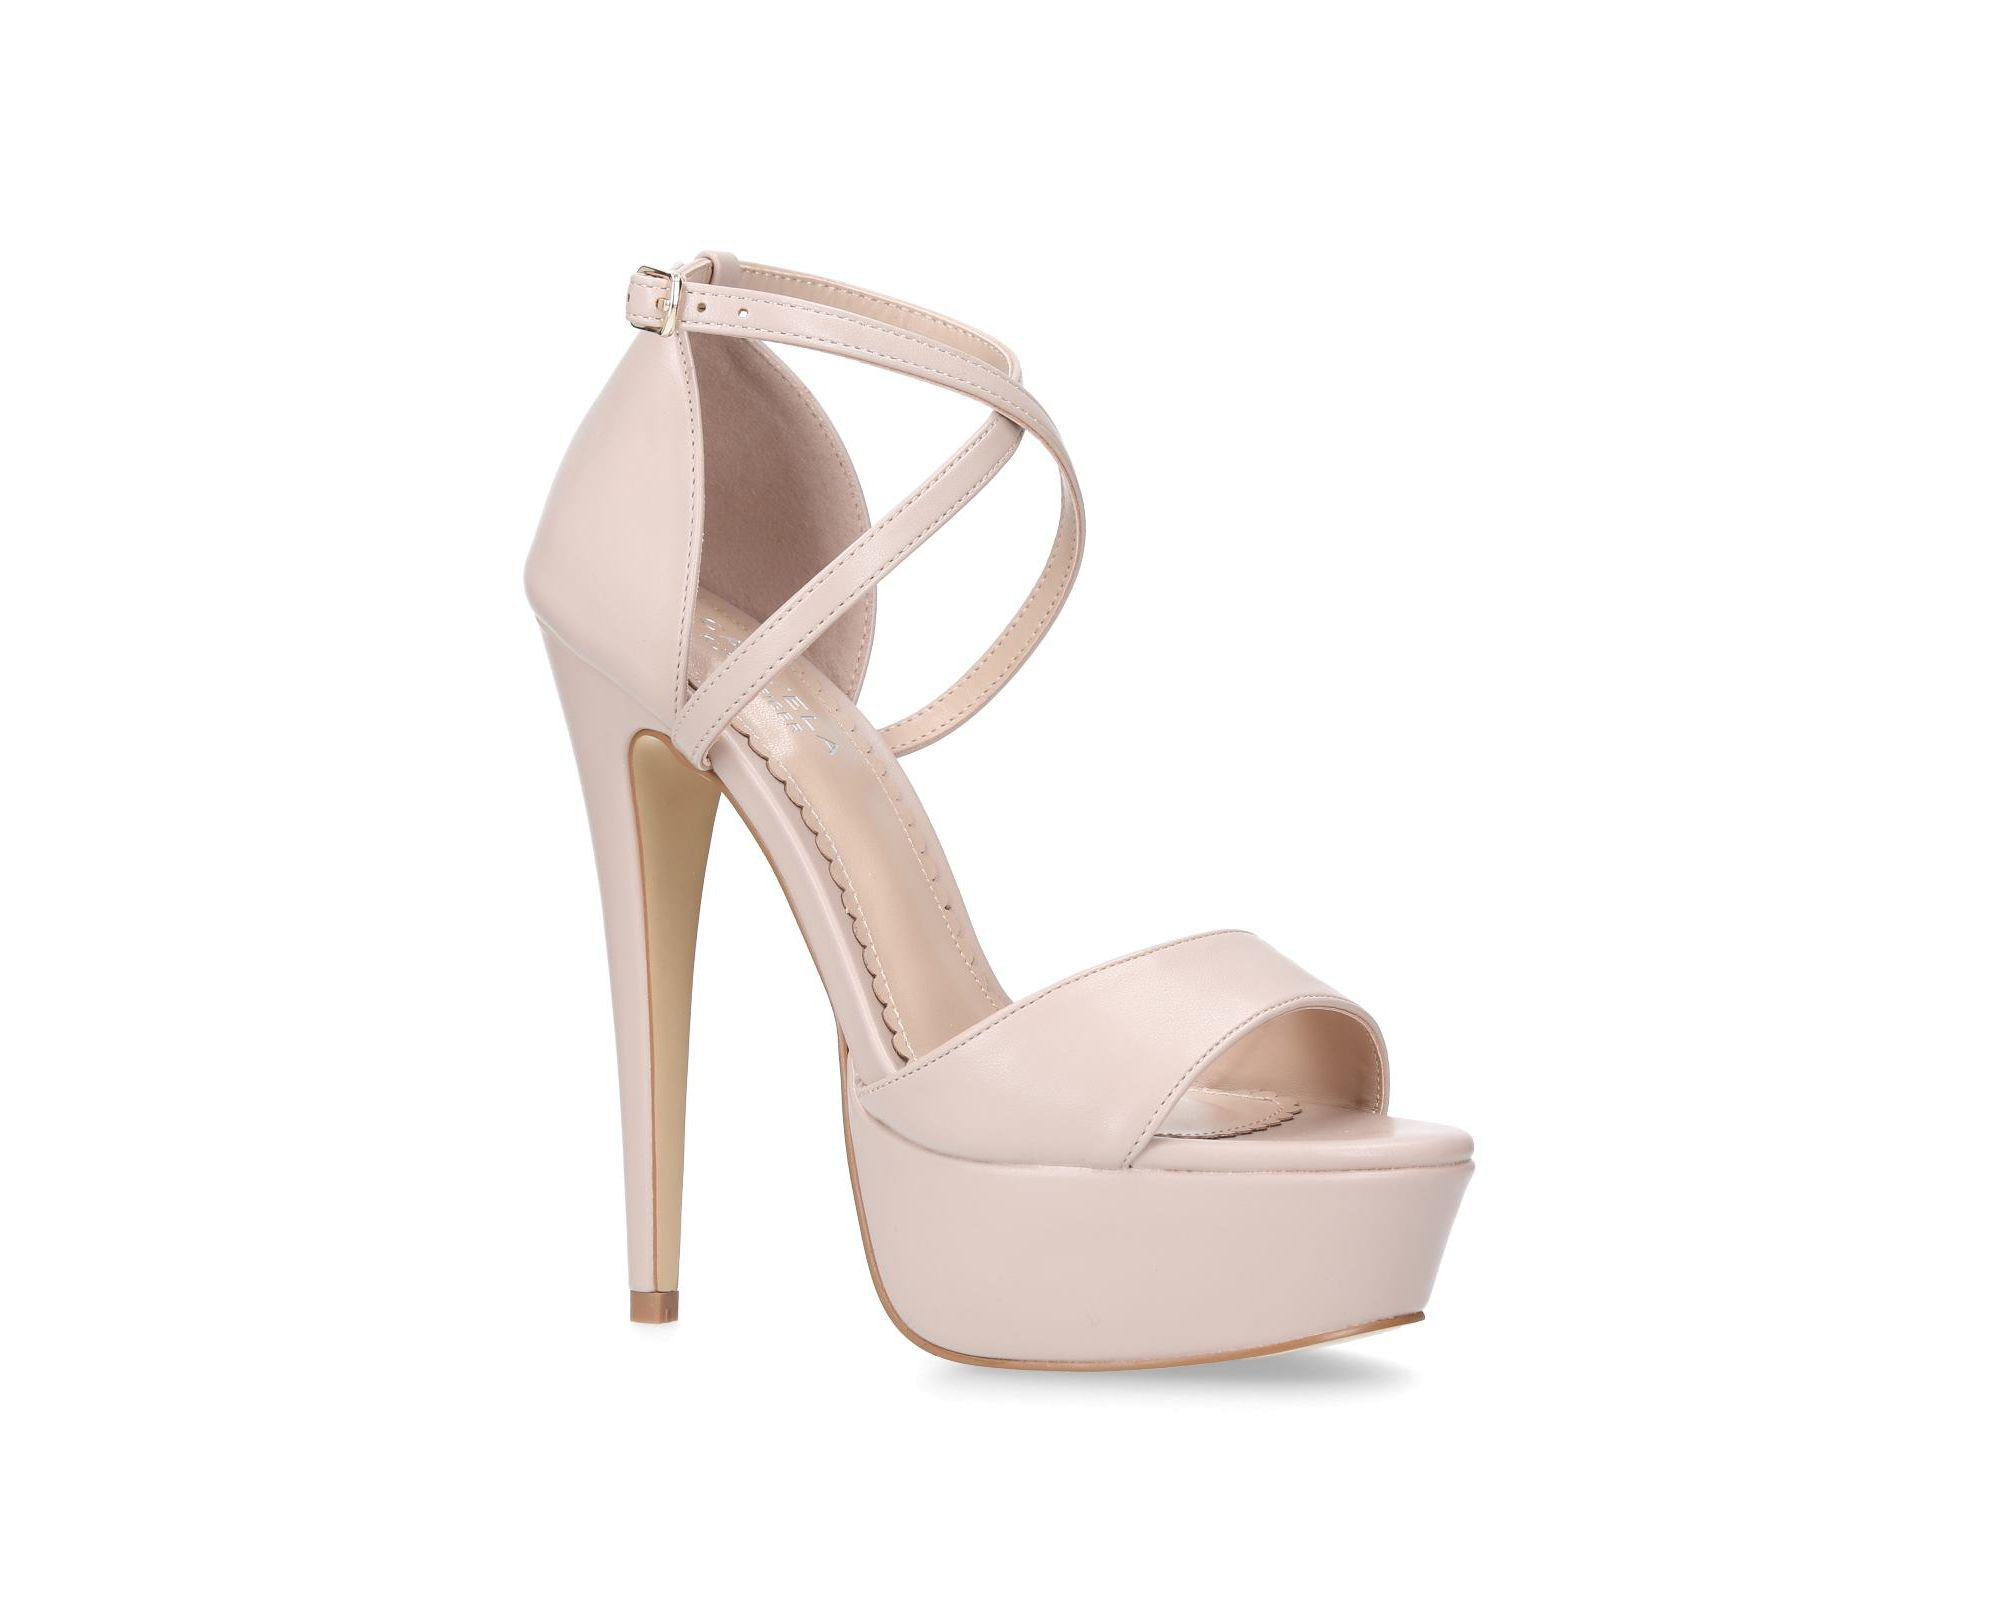 Kurt Sandals Natural Nude Platform 'leap' High Carvela Heel Geiger 8nwkXNOP0